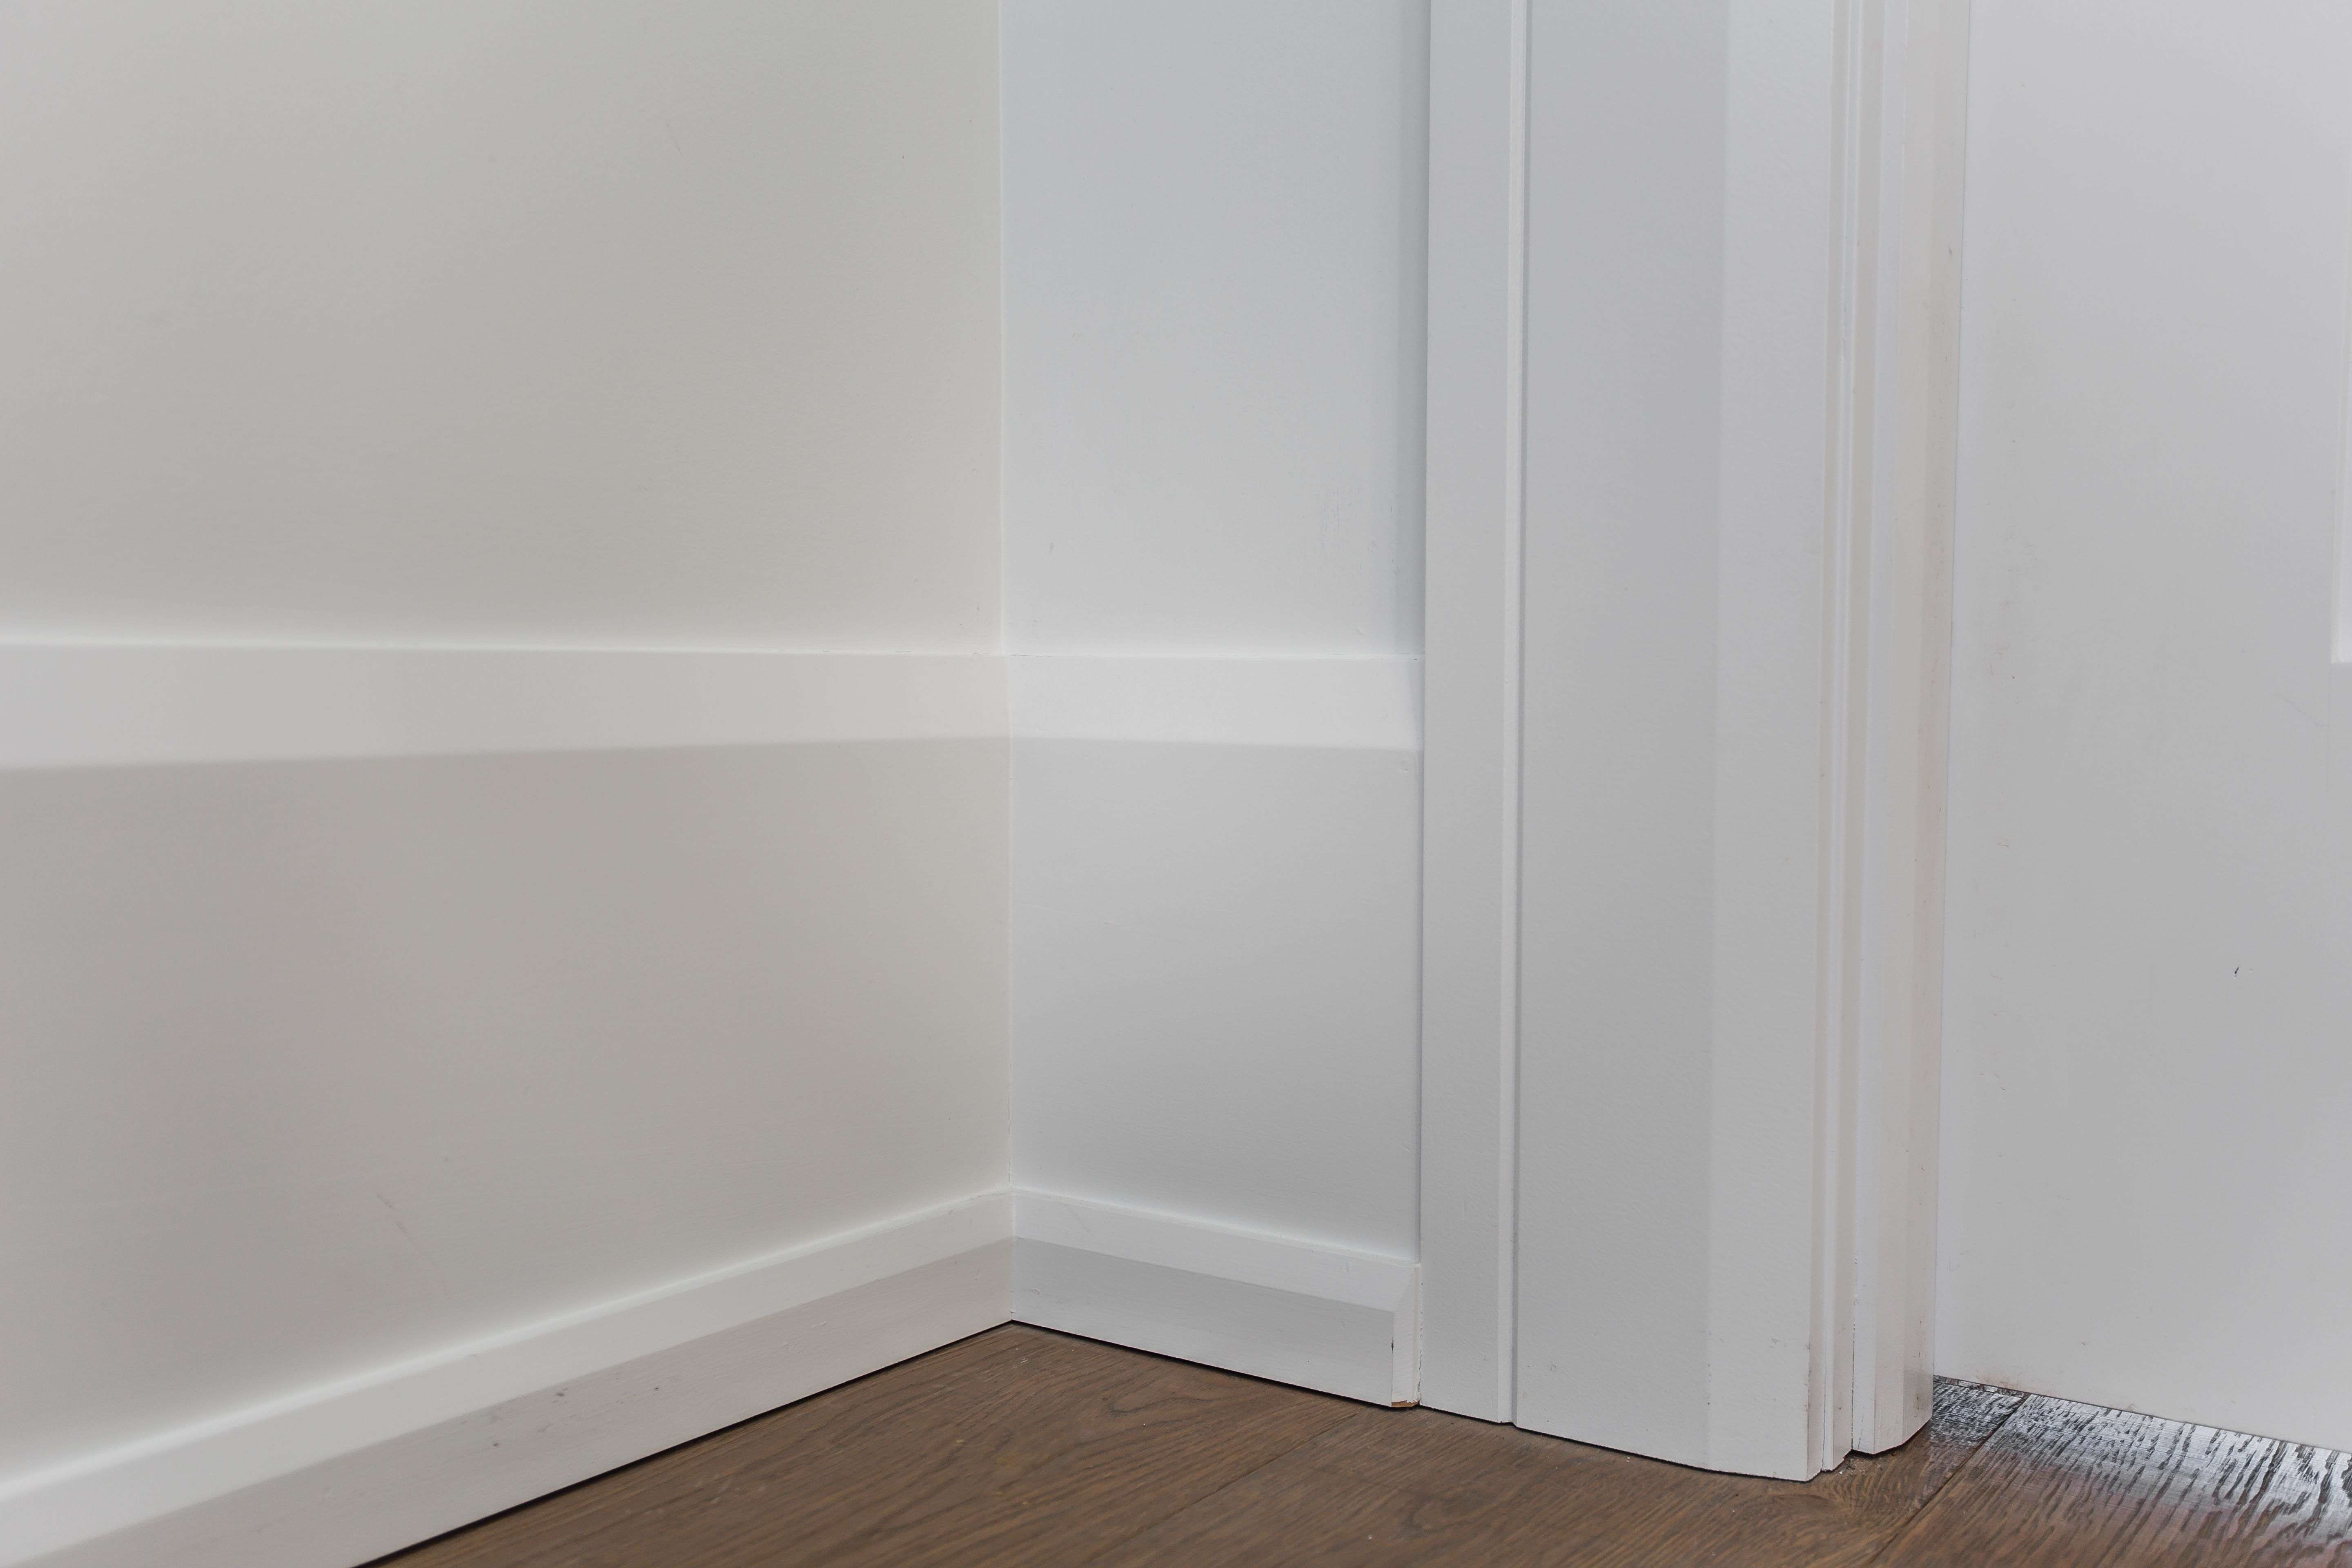 Beveled Casing And Baseboard In 2020 Baseboard Styles Moldings And Trim Baseboard Trim